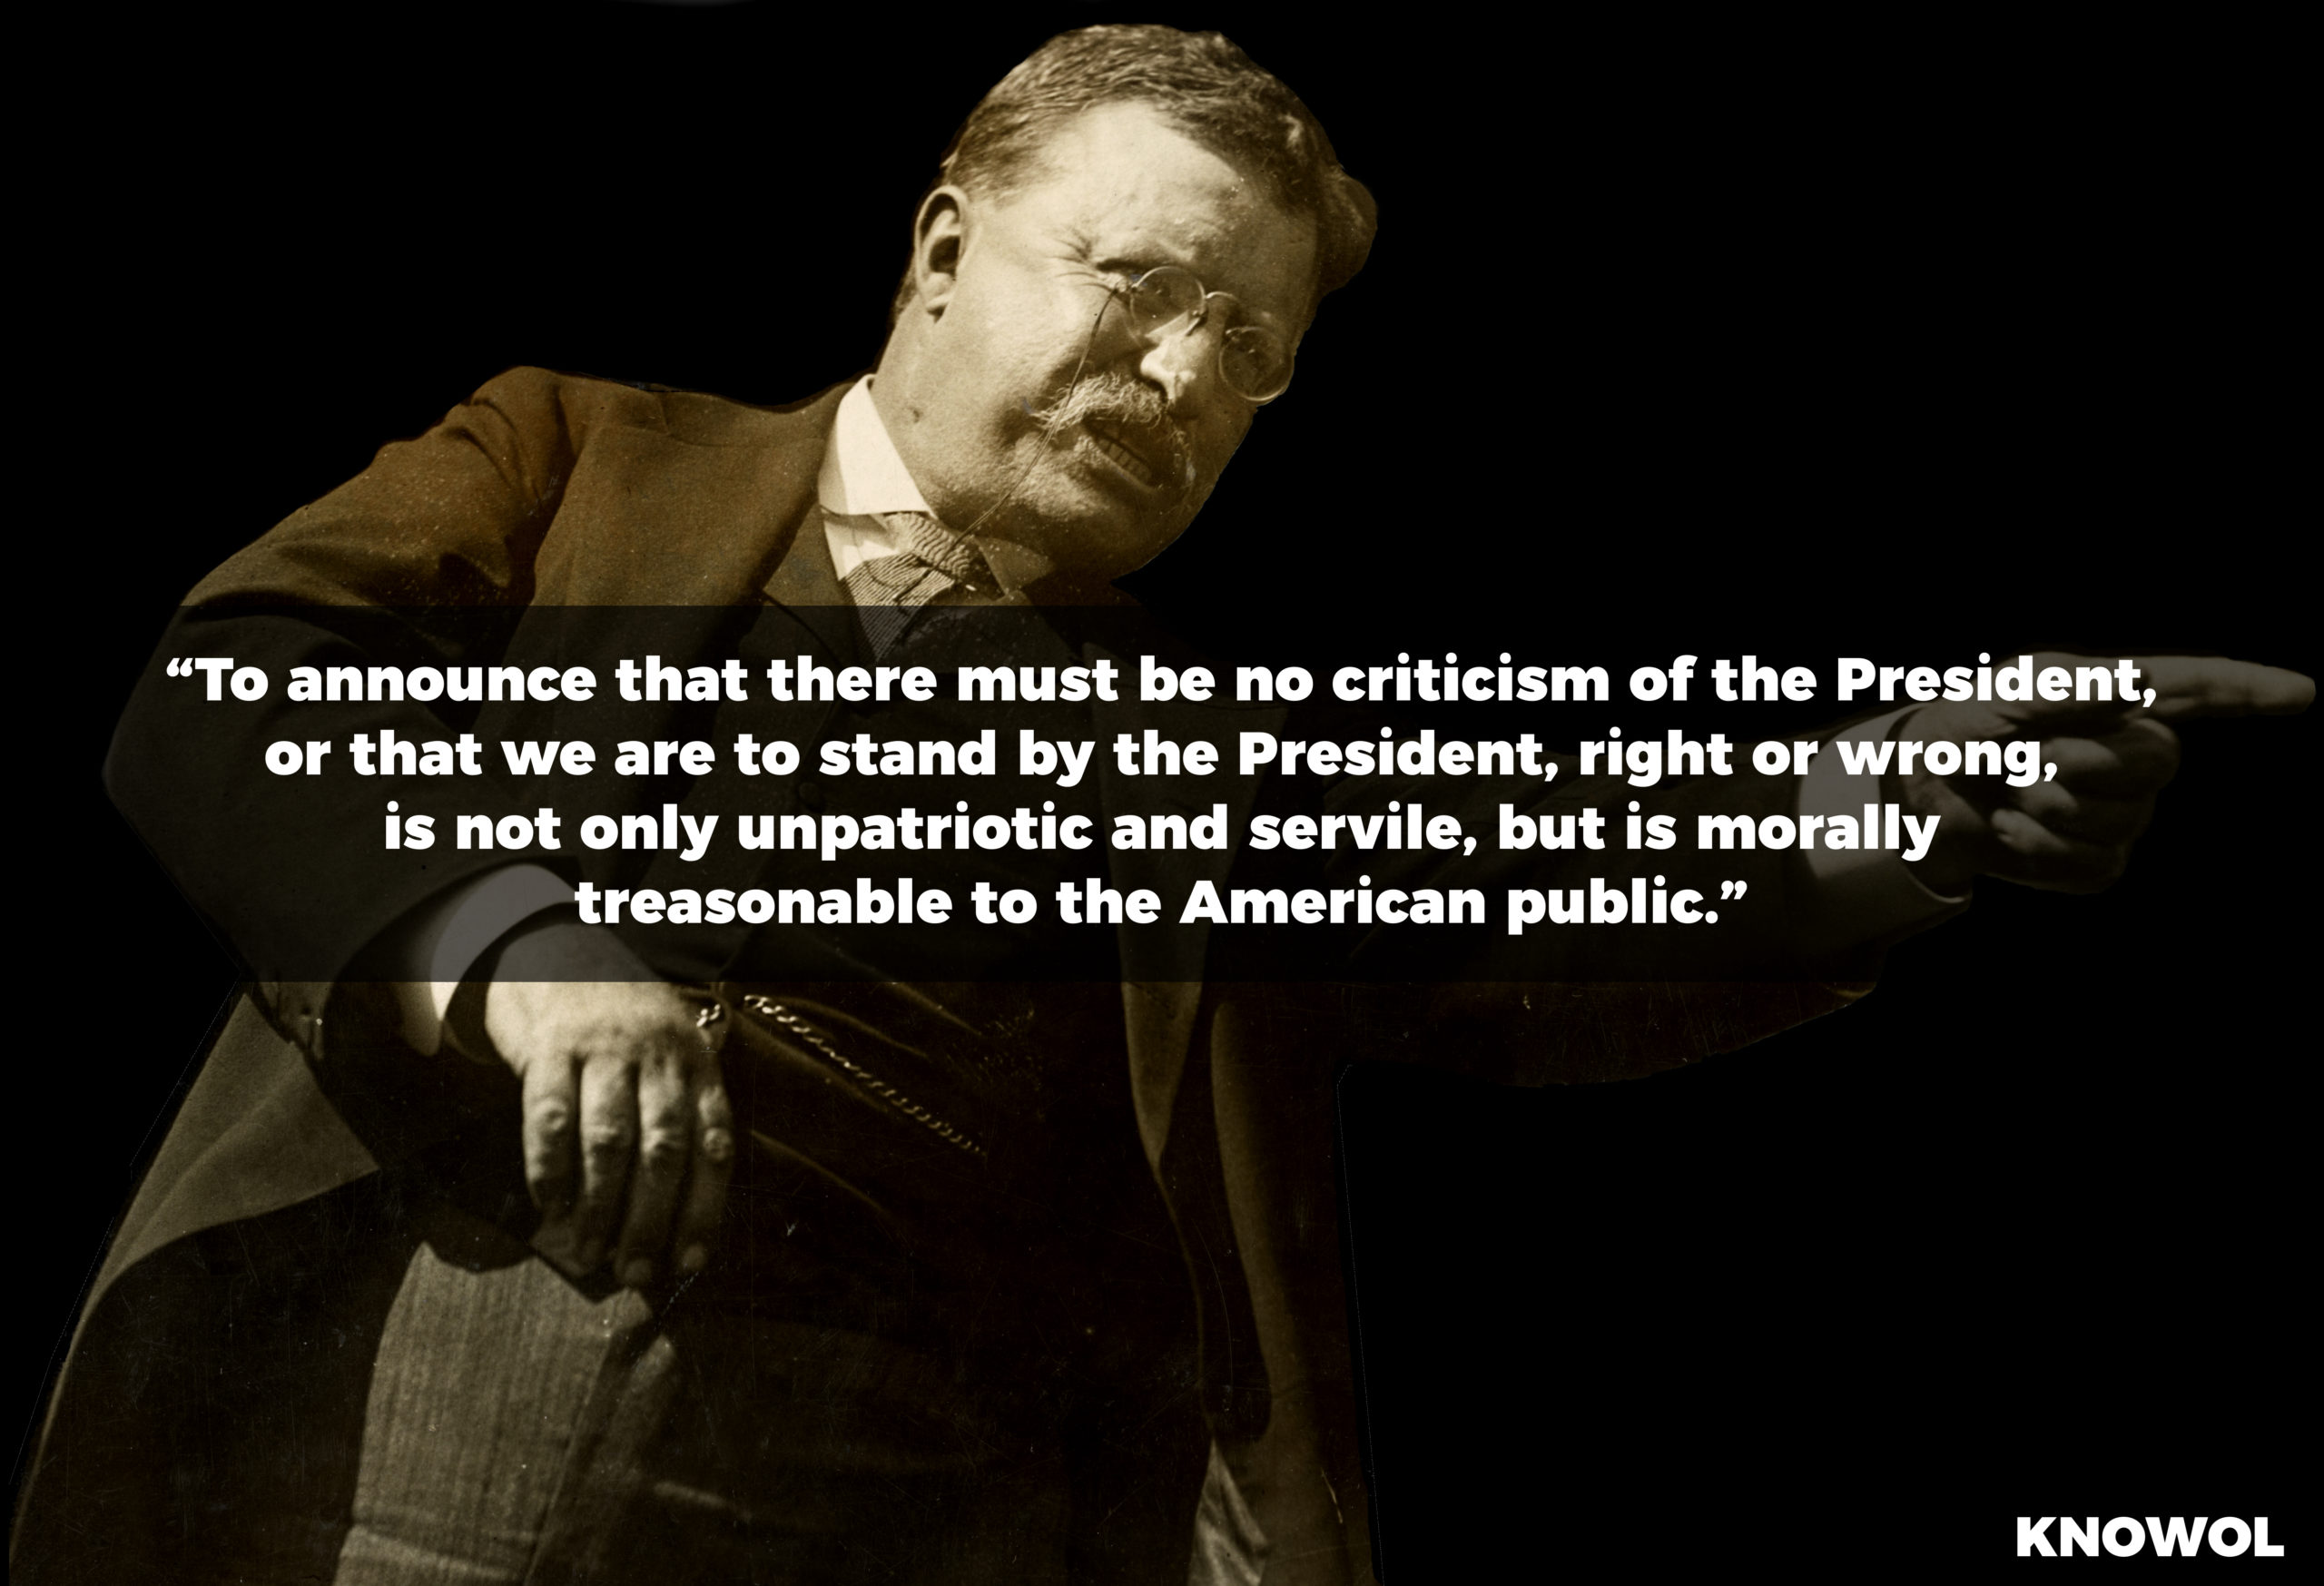 Theodore Roosevelt Quotes Prepossessing Theodore Roosevelt Discusses Criticism Of The President  Knowol